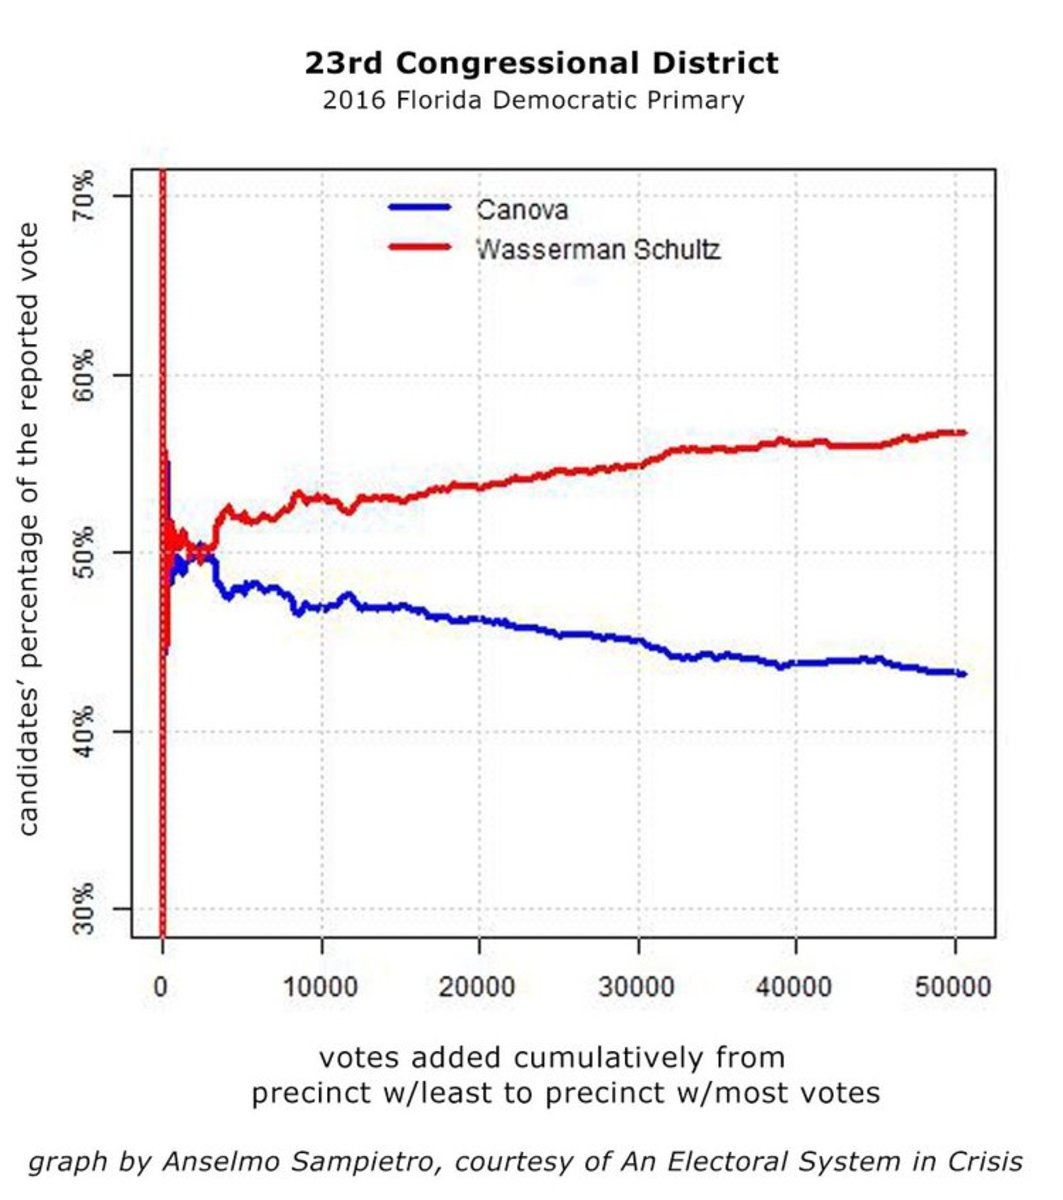 """Cumulative Vote Tally"" analysis from Canova - Wasserman-Schultz primary race."